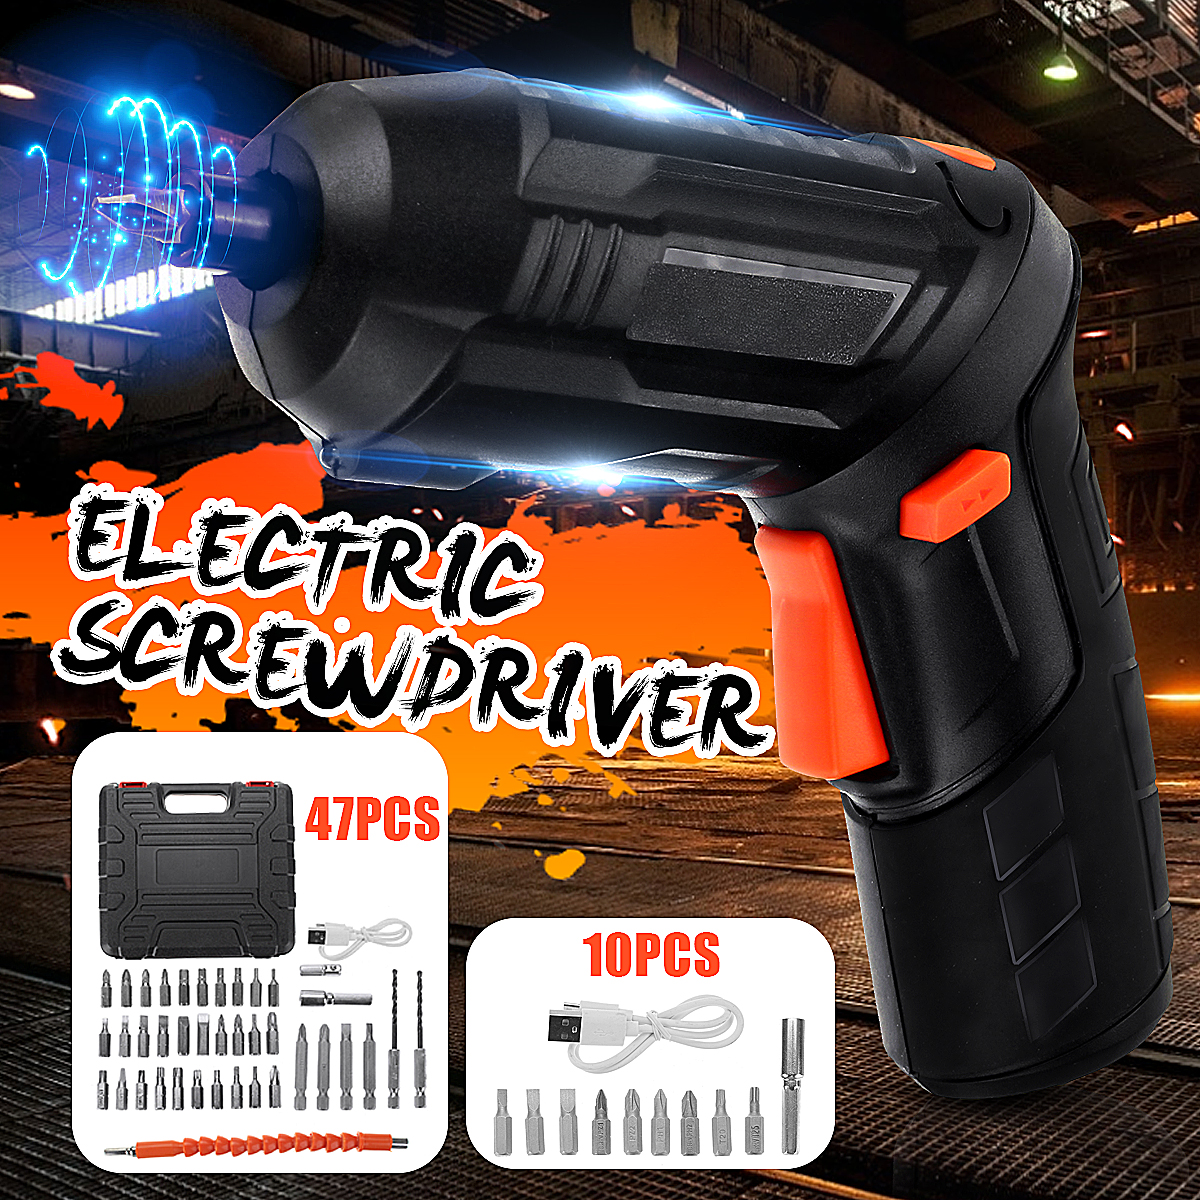 DC3.6V 1300mAh Mini Electric Screwdriver Drill Lithium Cordless Power Screw Driver Tool With Drill Bits